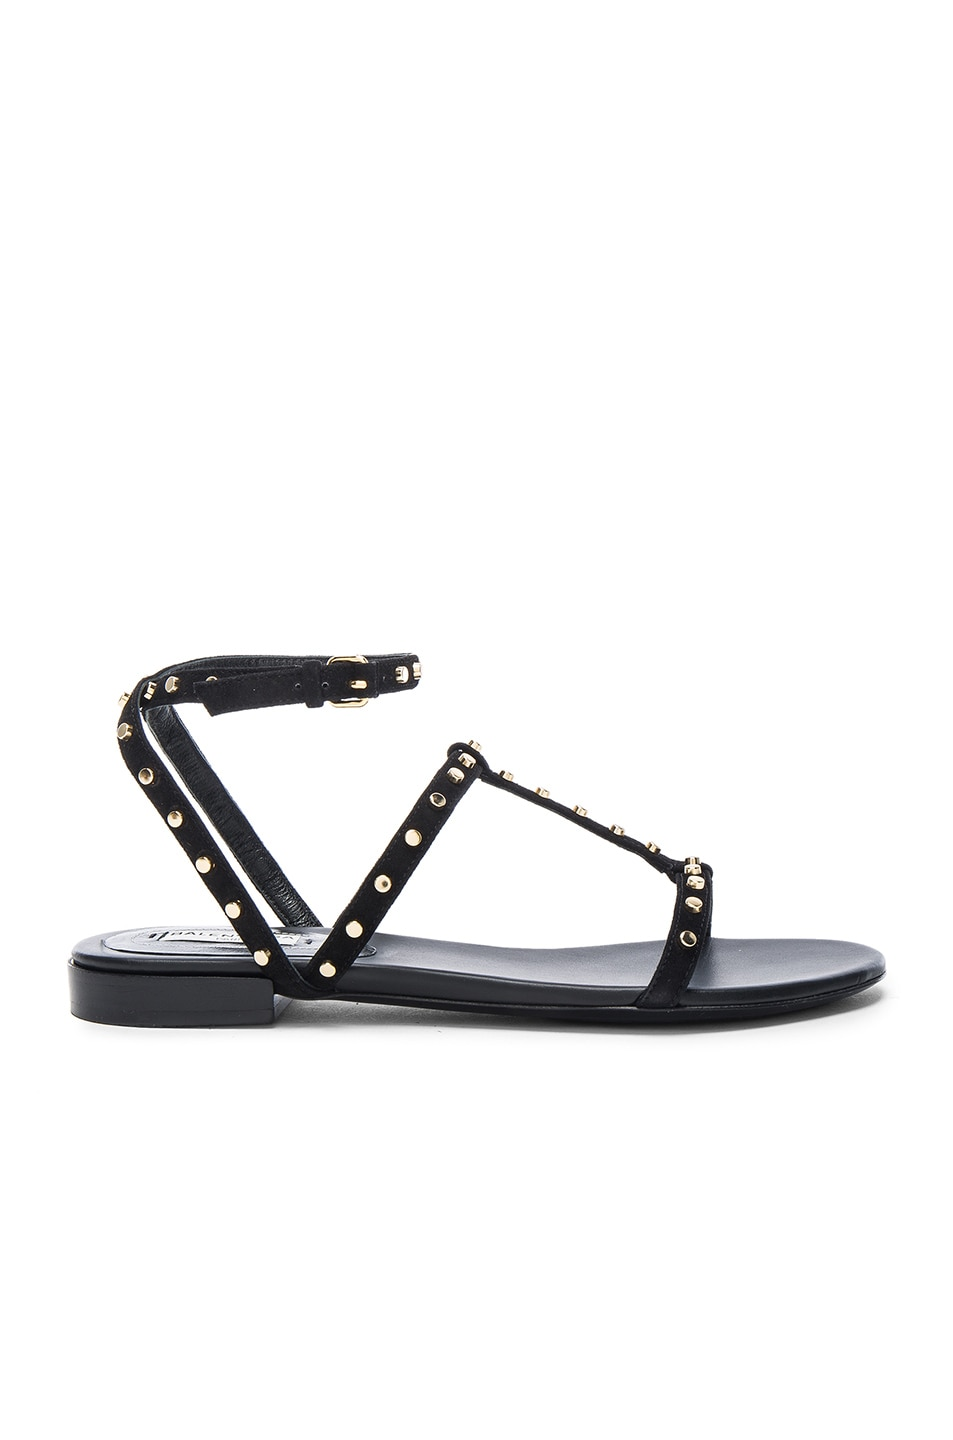 683458f19ffd Image 1 of Balenciaga Studded Suede Sandals in Black